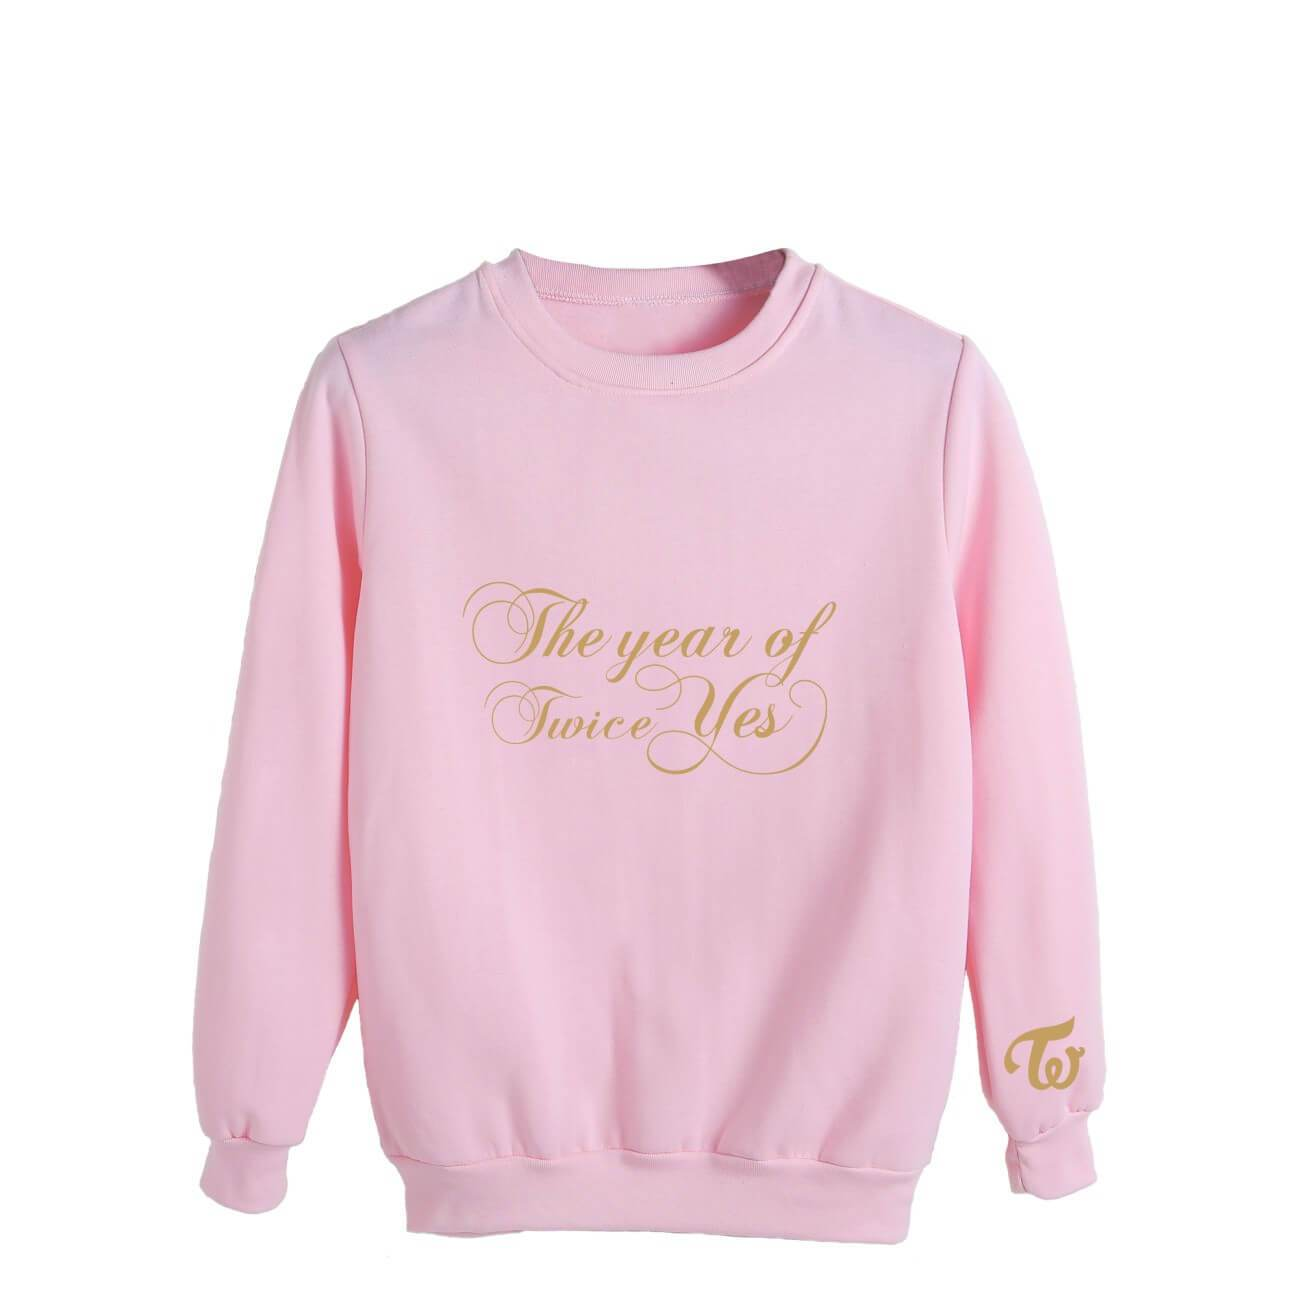 TWICE The year of Yes Printed Cotton Loose Sweatshirt